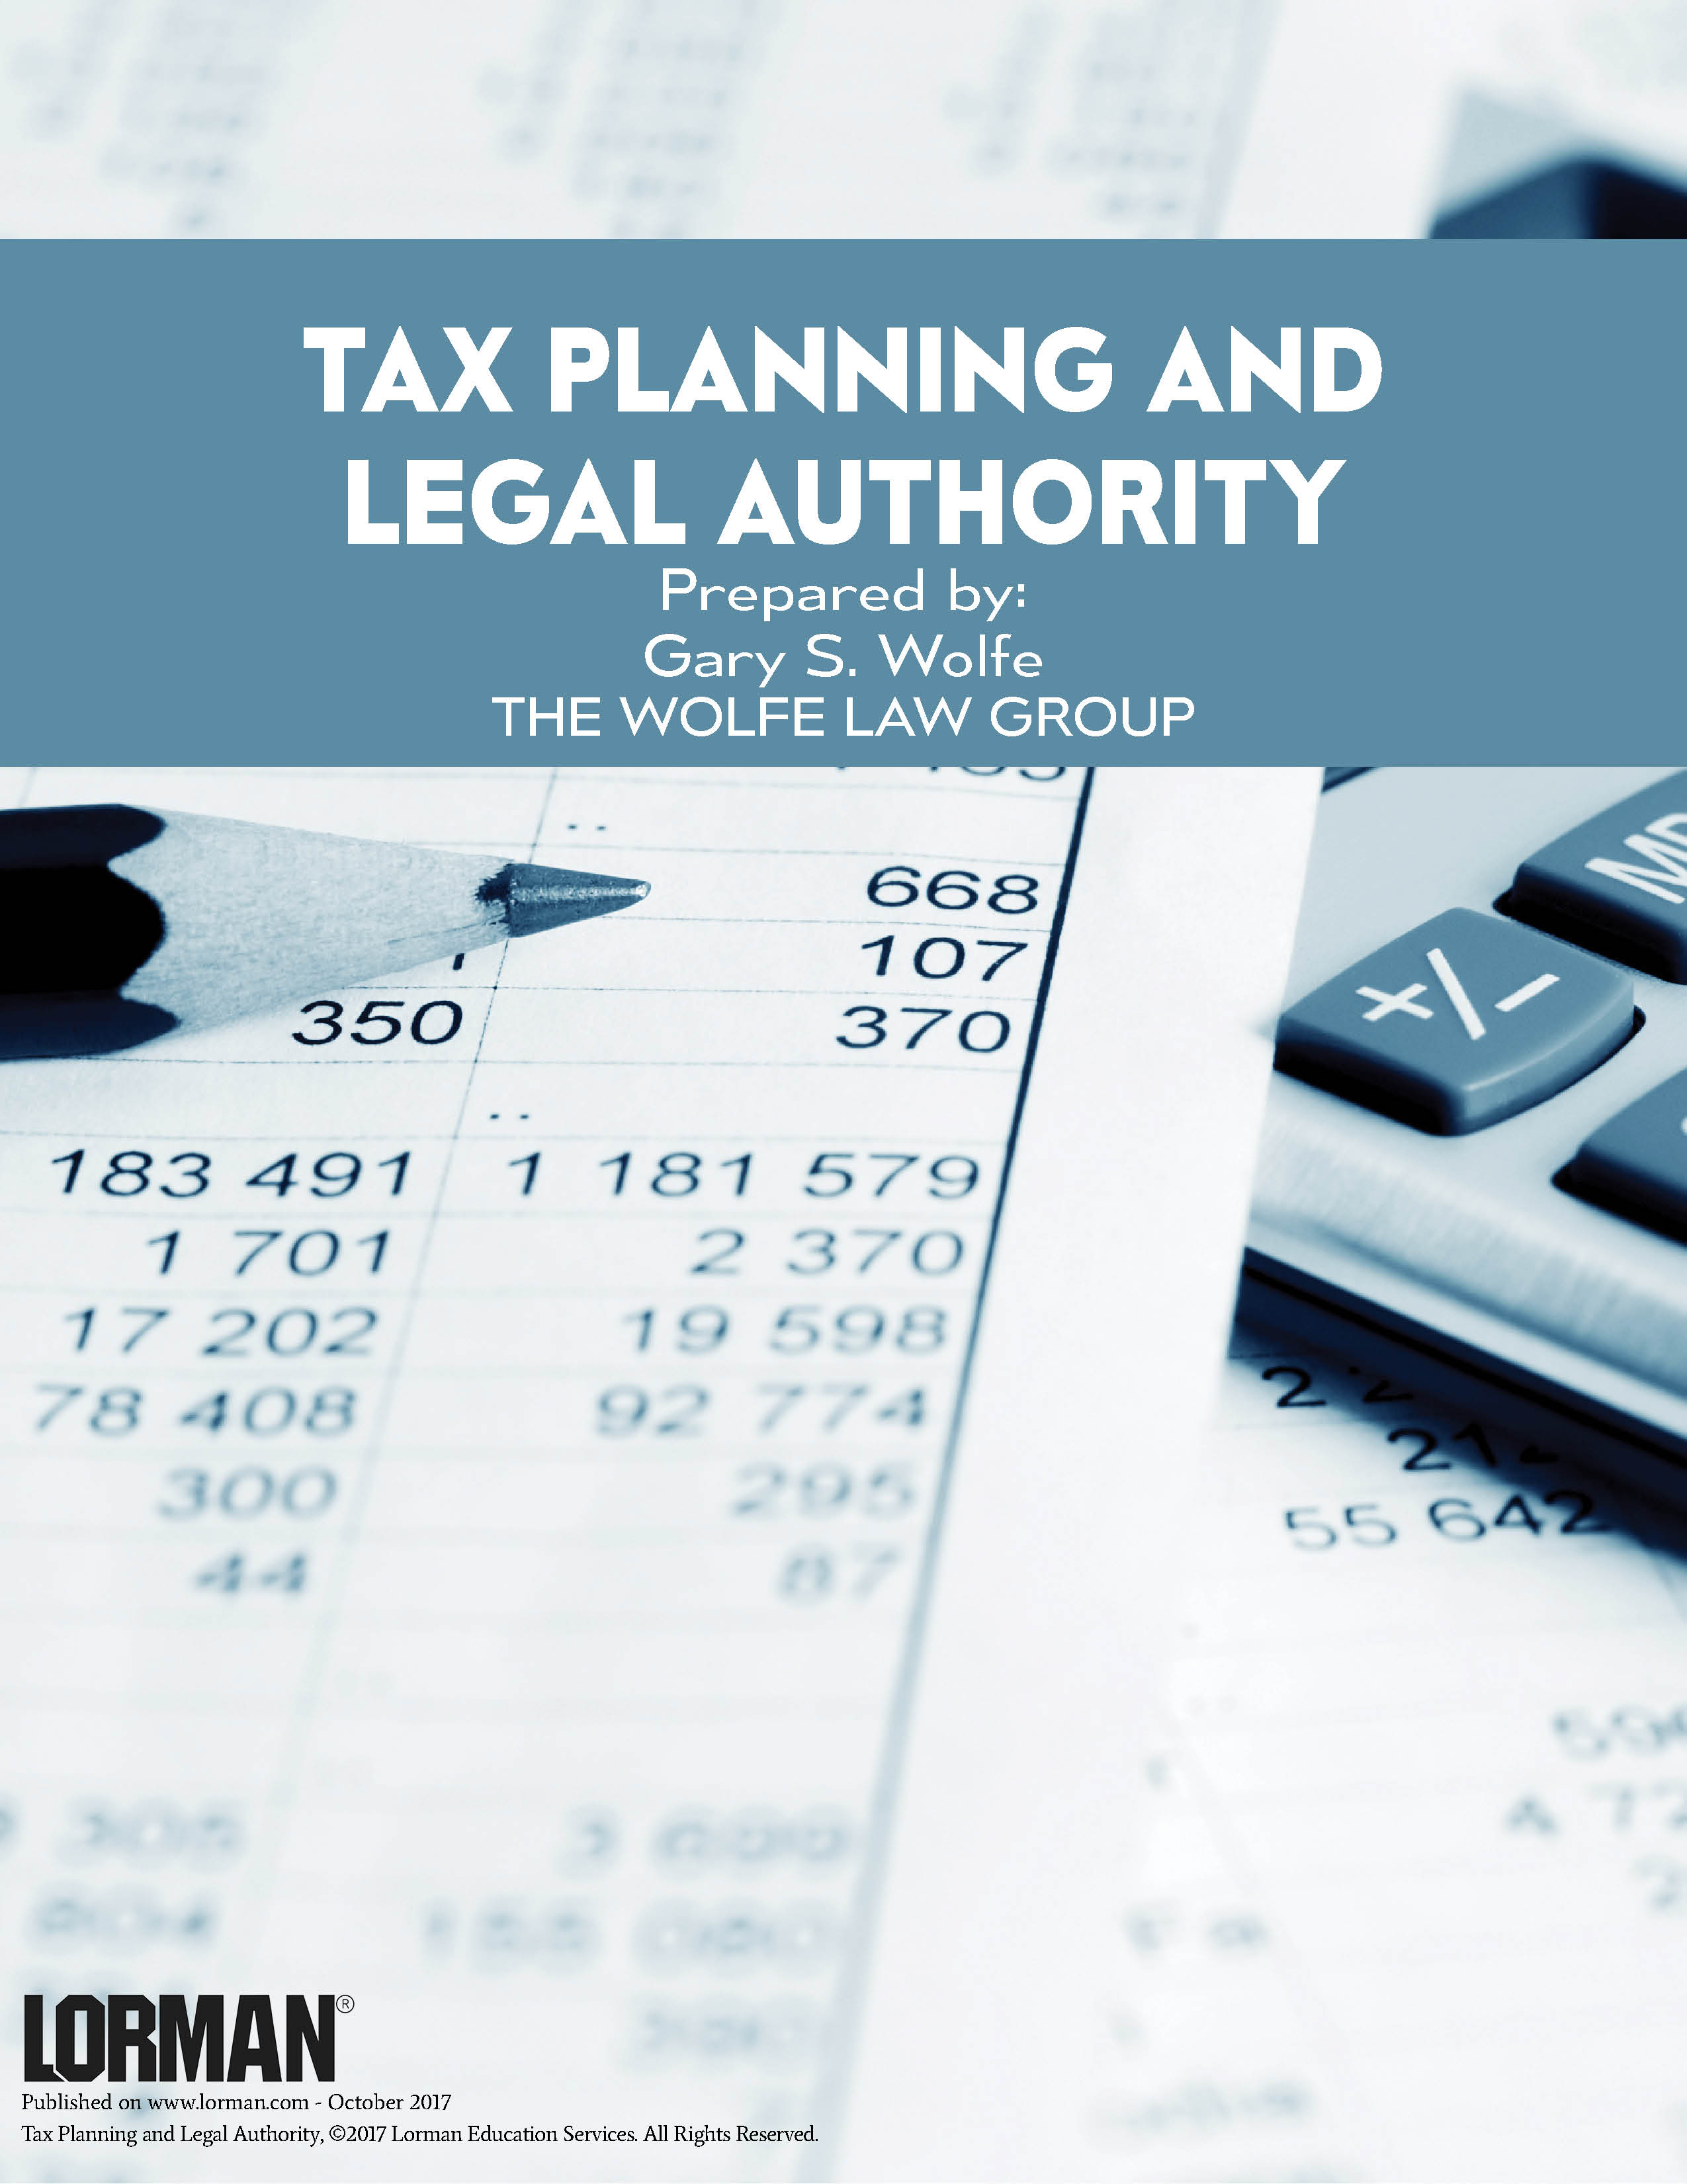 Tax Planning and Legal Authority